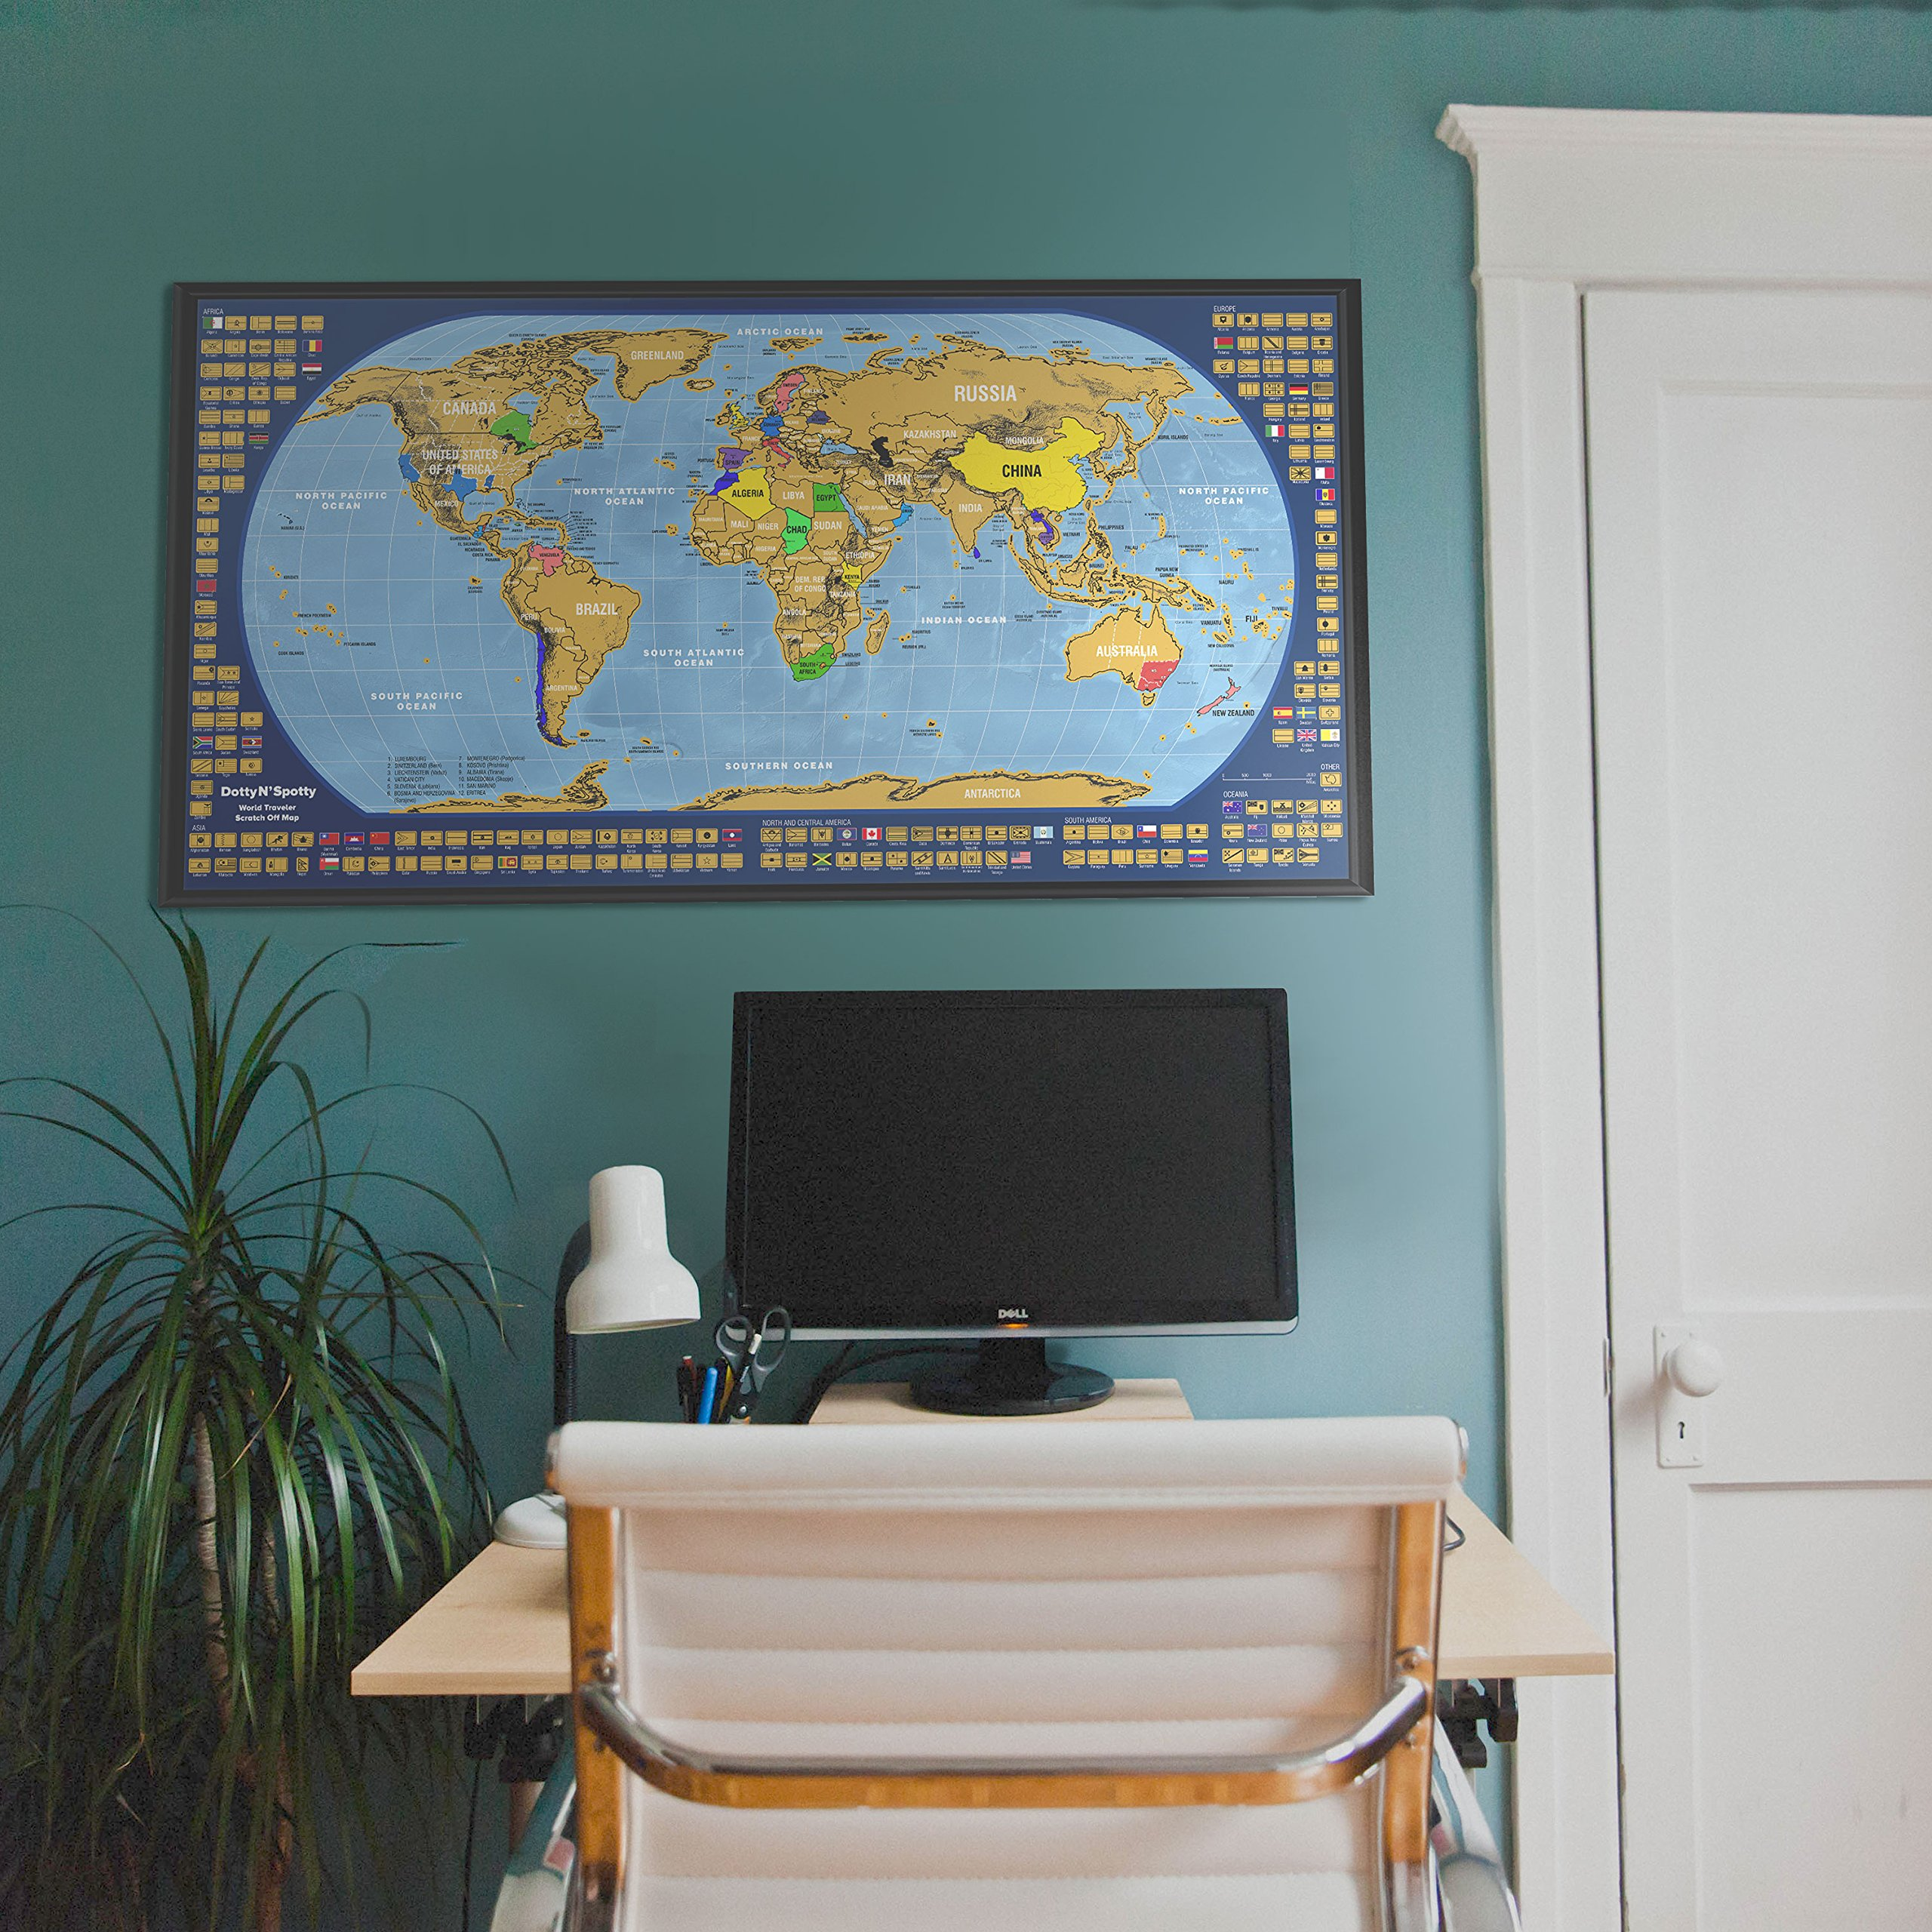 Scratch off Map of the World, with country flags and US state borders - Laminated surface - Scrape tool included - Bright and Vibrant Colors - Designed by Dotty N'Spotty by Dotty N'Spotty (Image #3)